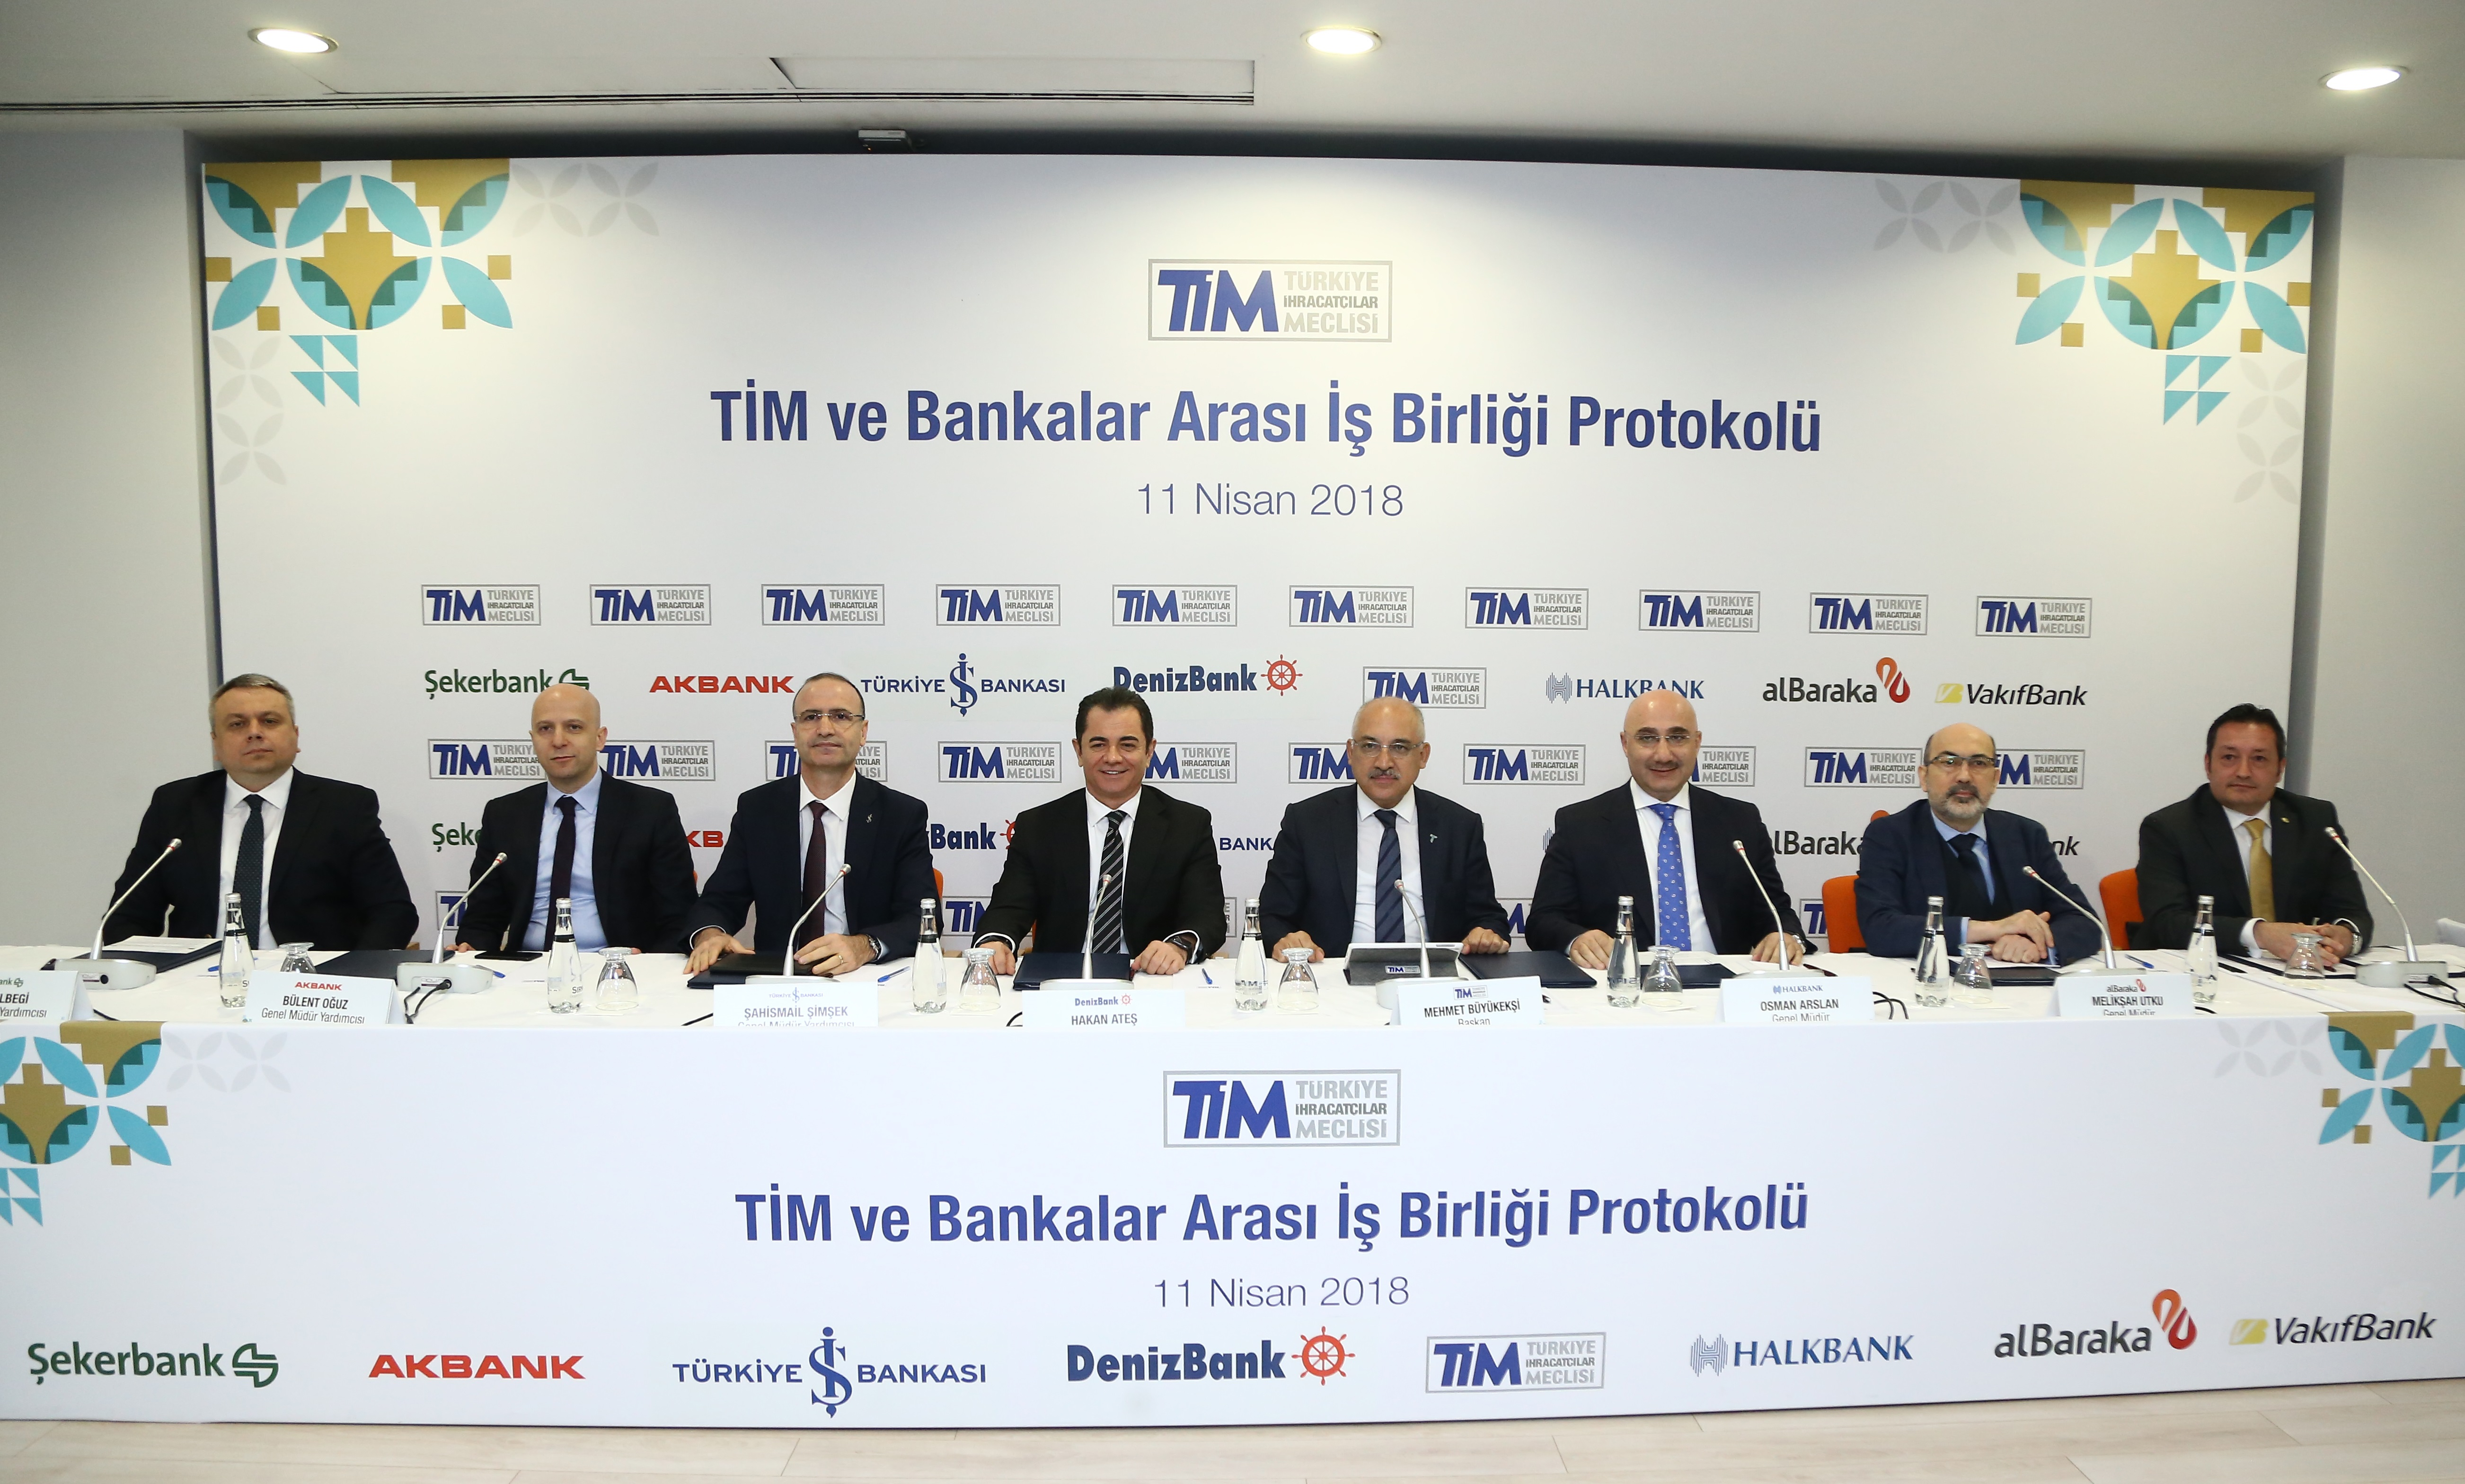 TURKISH EXPORTERS' ASSEMBLY ENTERED INTO COLLABORATION WITH SEVEN MAJOR BANKS